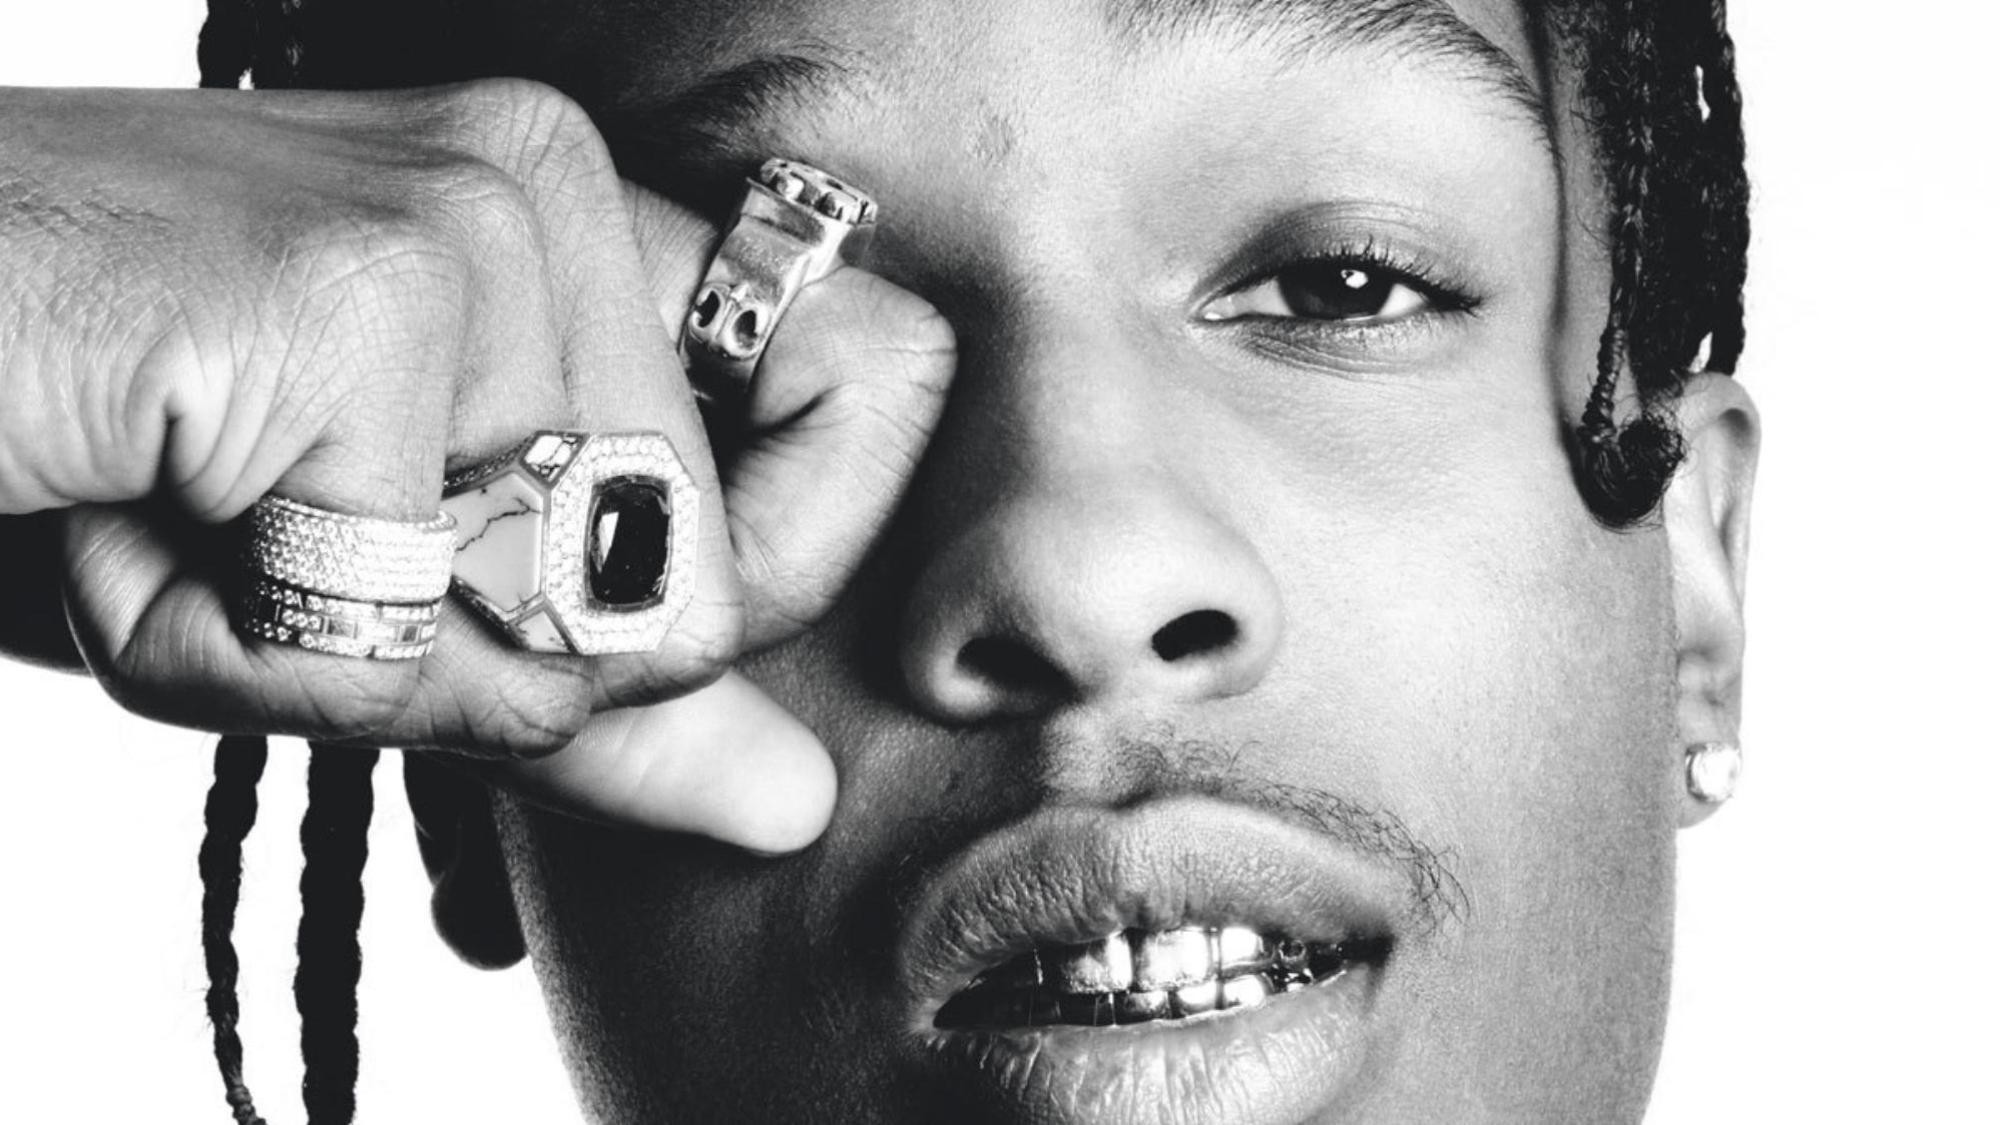 a$ap rocky and other highlights from 'time''s list of most influential people